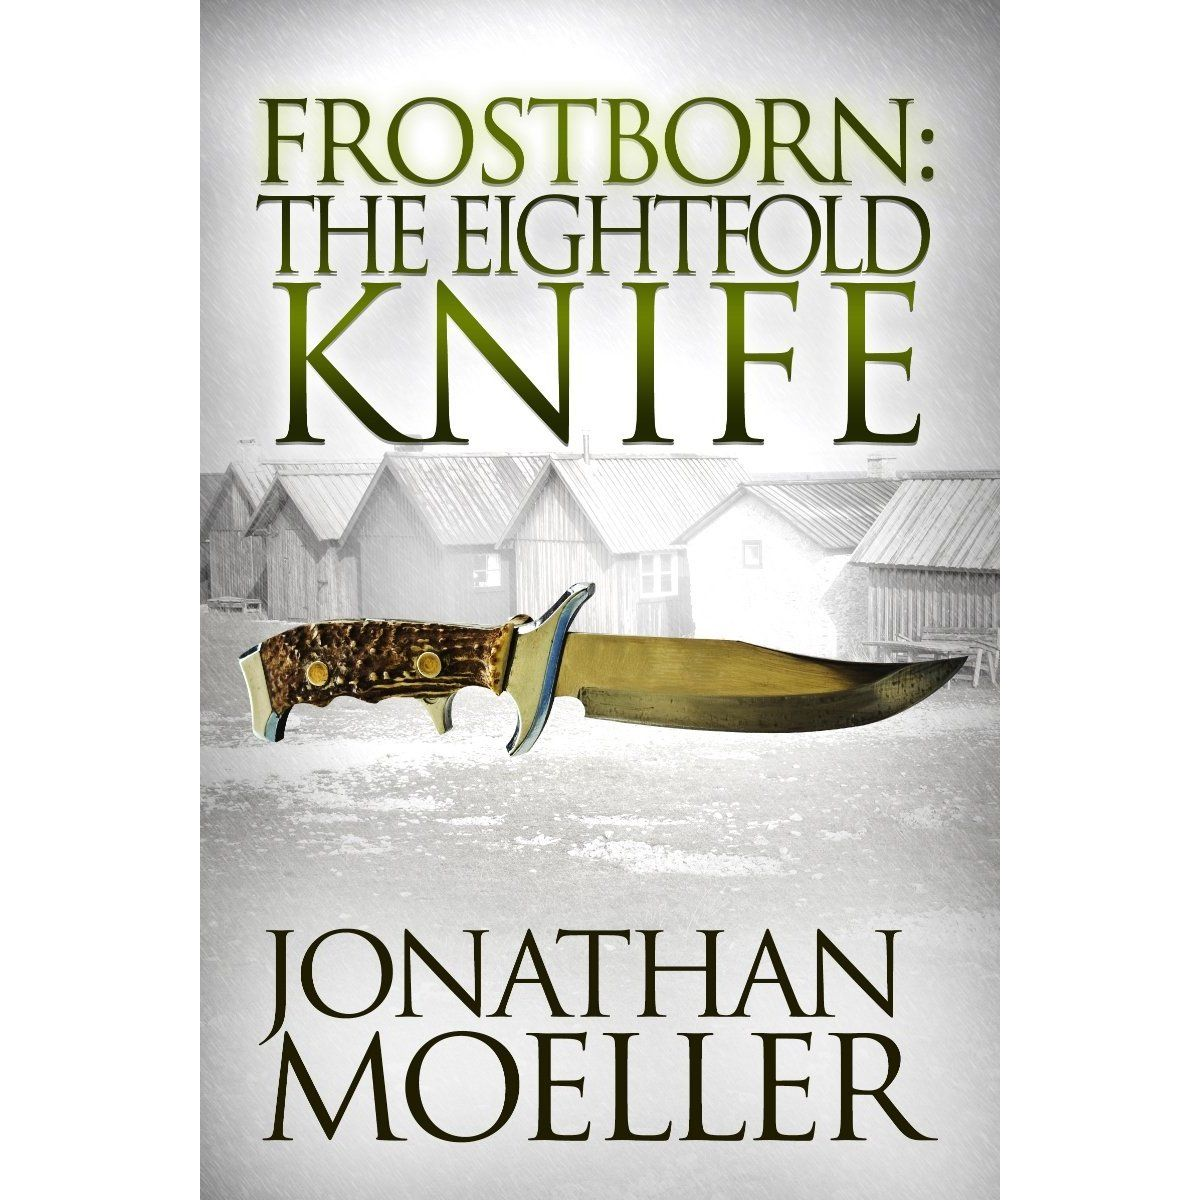 Frostborn: The Eightfold Knife (Frostborn #2) eBook: Jonathan Moeller: Amazon.com.au: Kindle Store